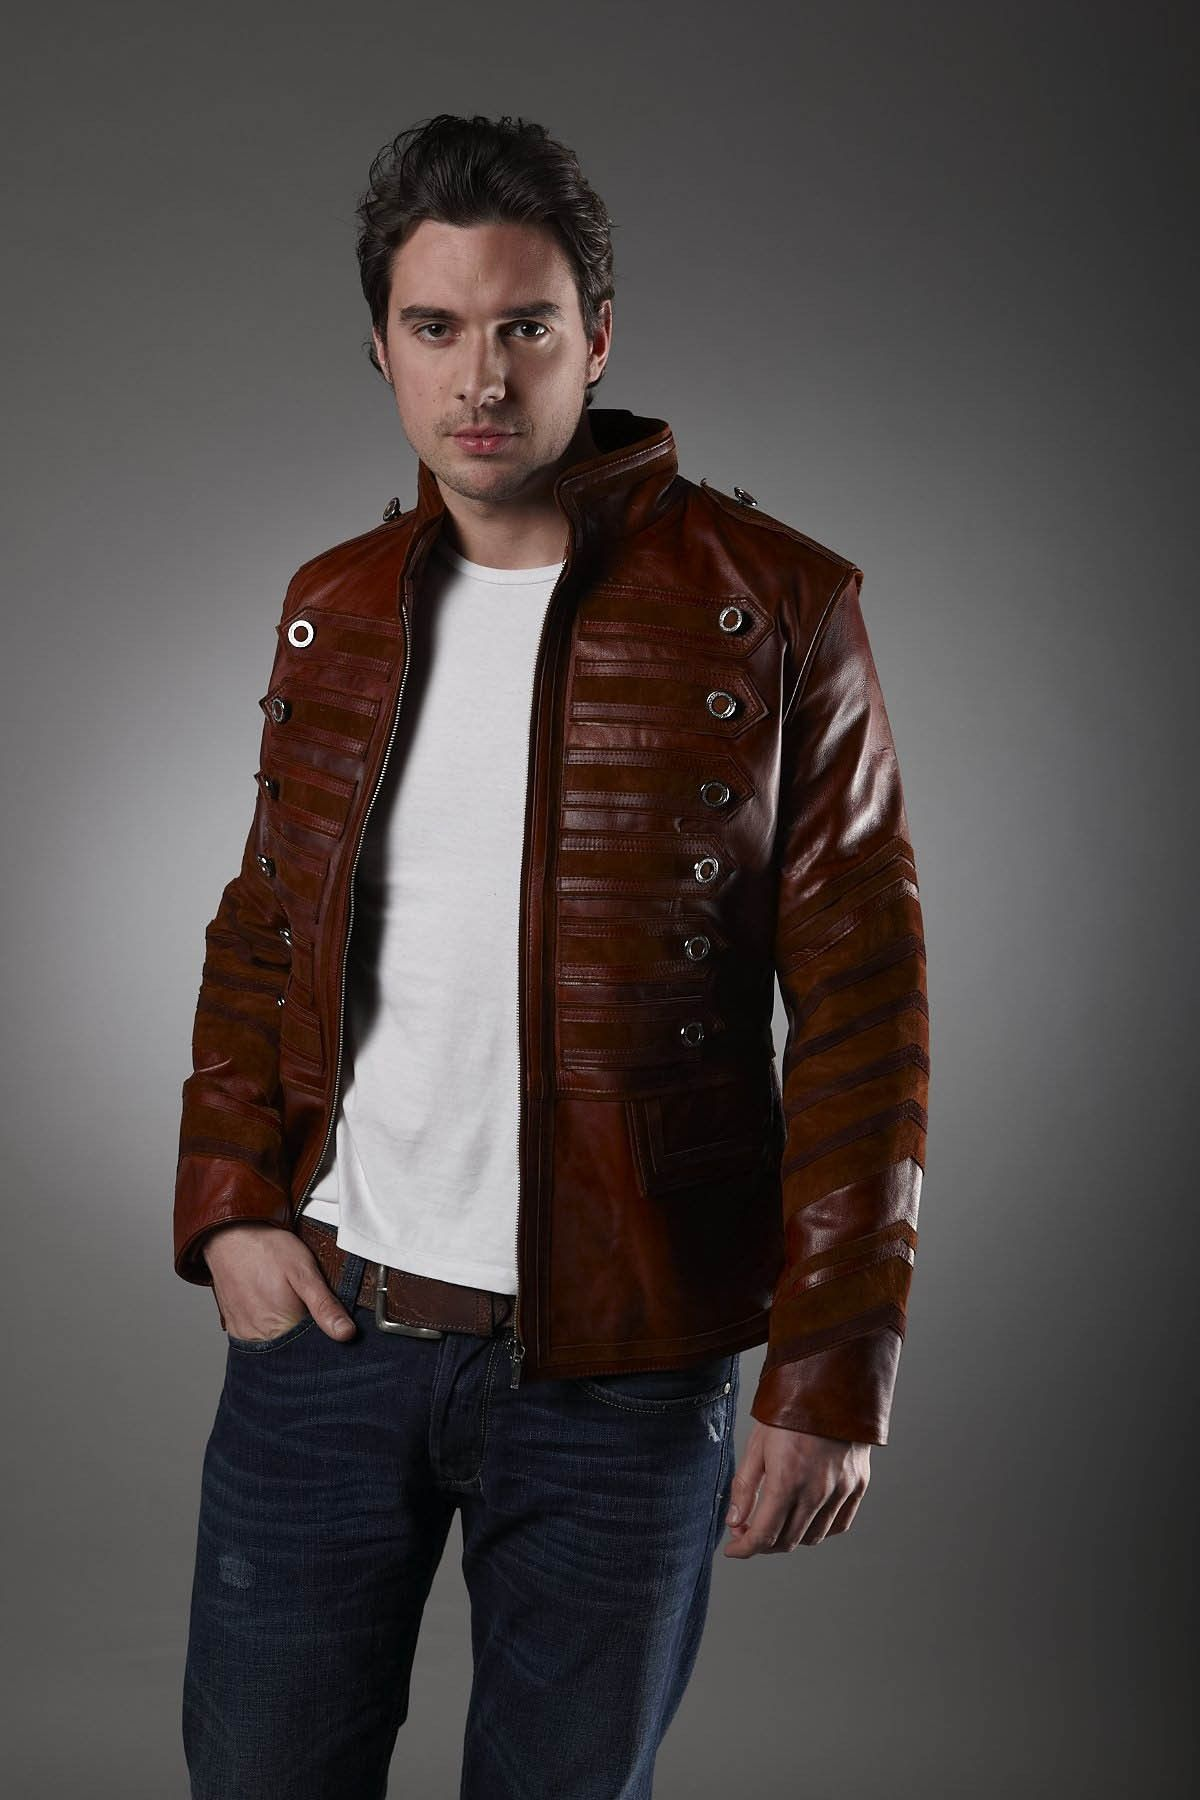 25 Best Leather Jackets For Men Best leather jackets